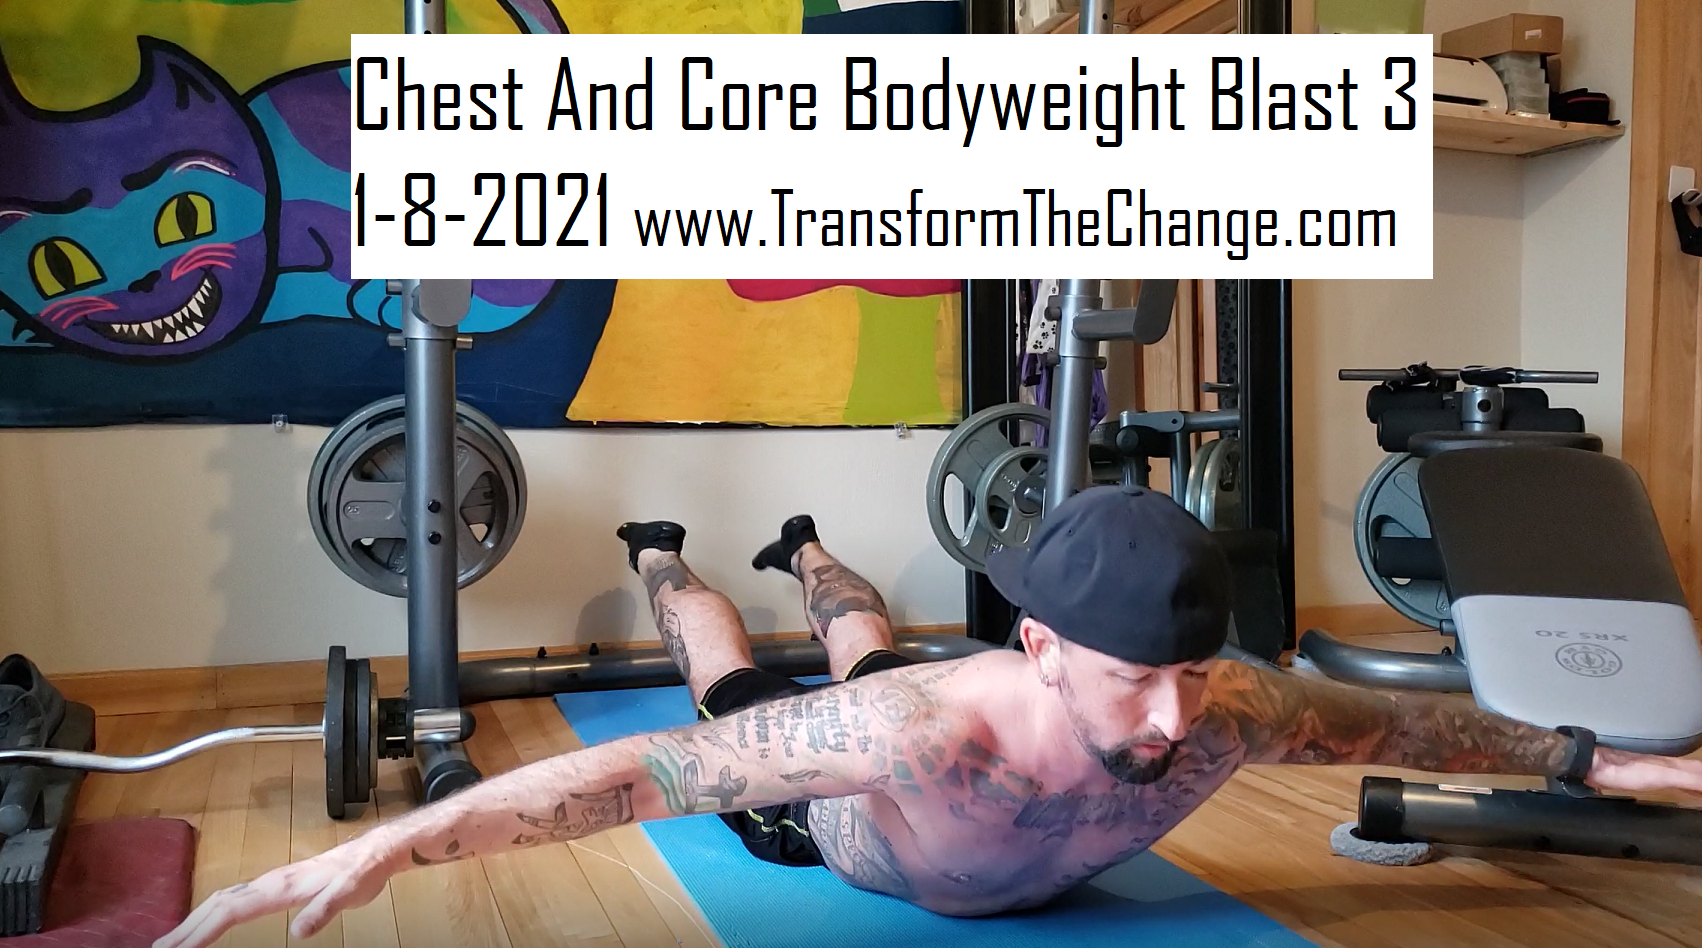 Chest And Core Bodyweight Blast 3 1-8-2021